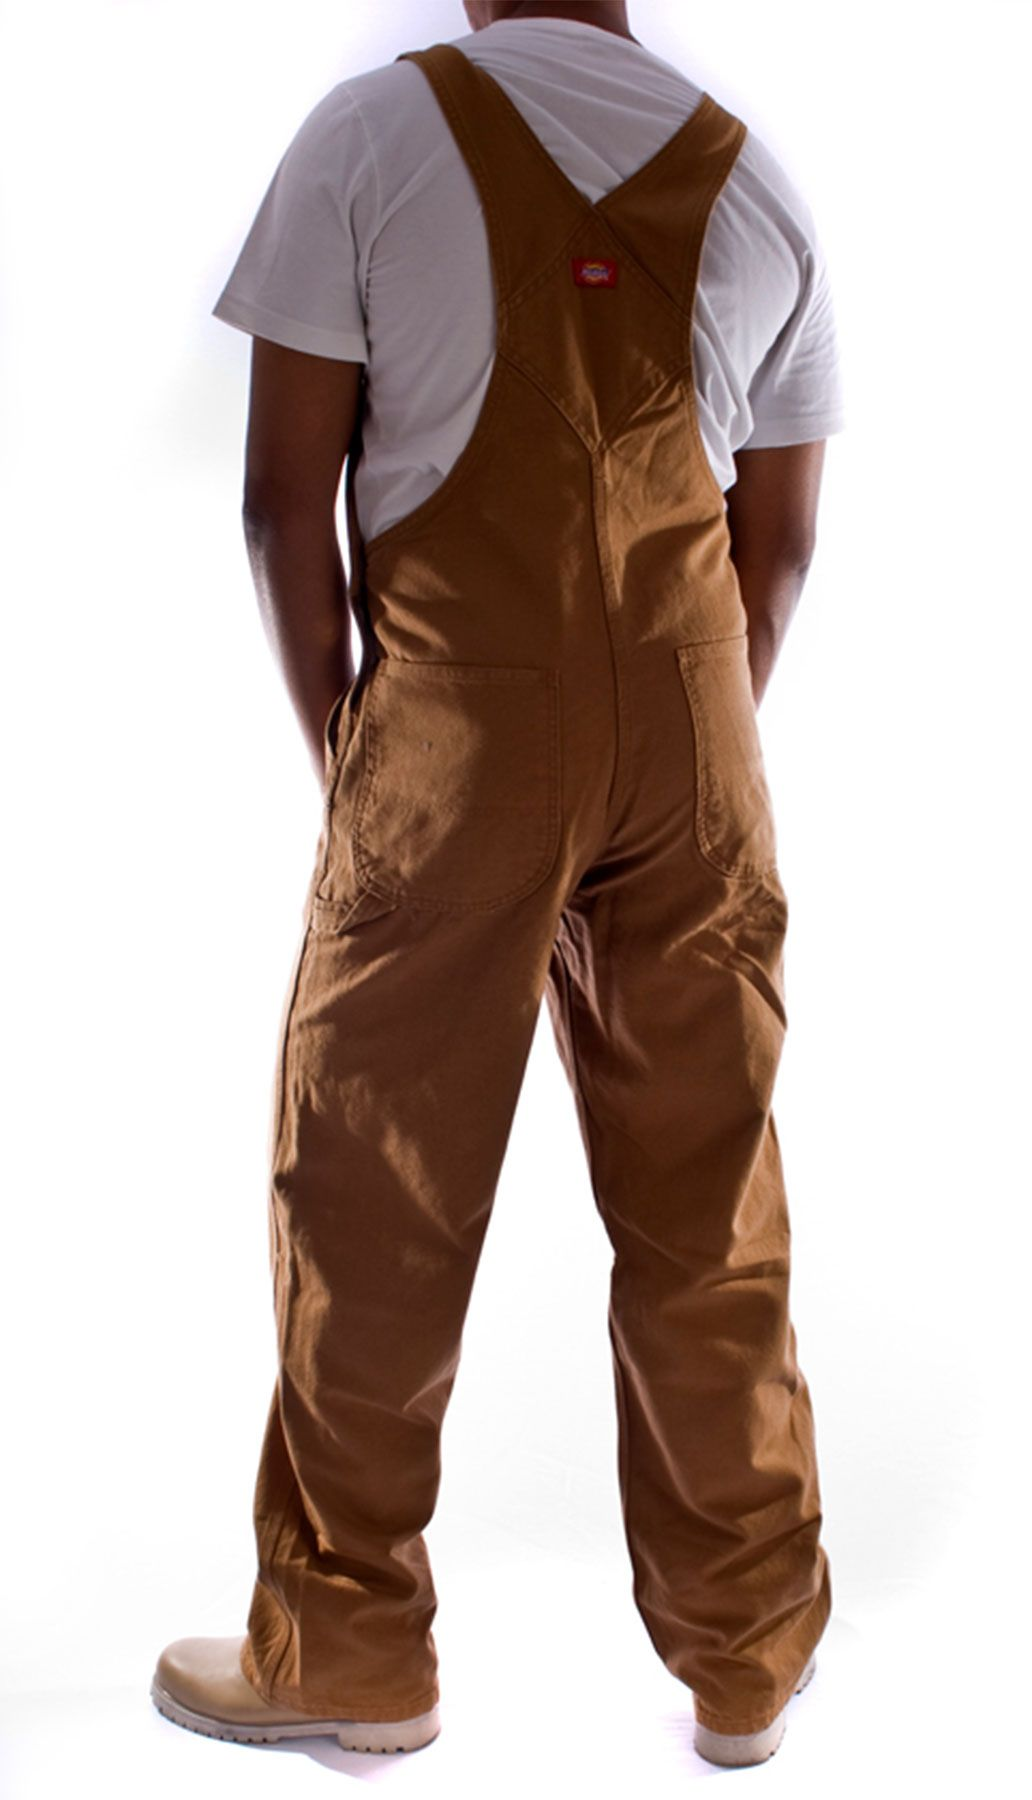 regular fit brown denim work dungarees overalls for men on best insulated coveralls for men id=13775